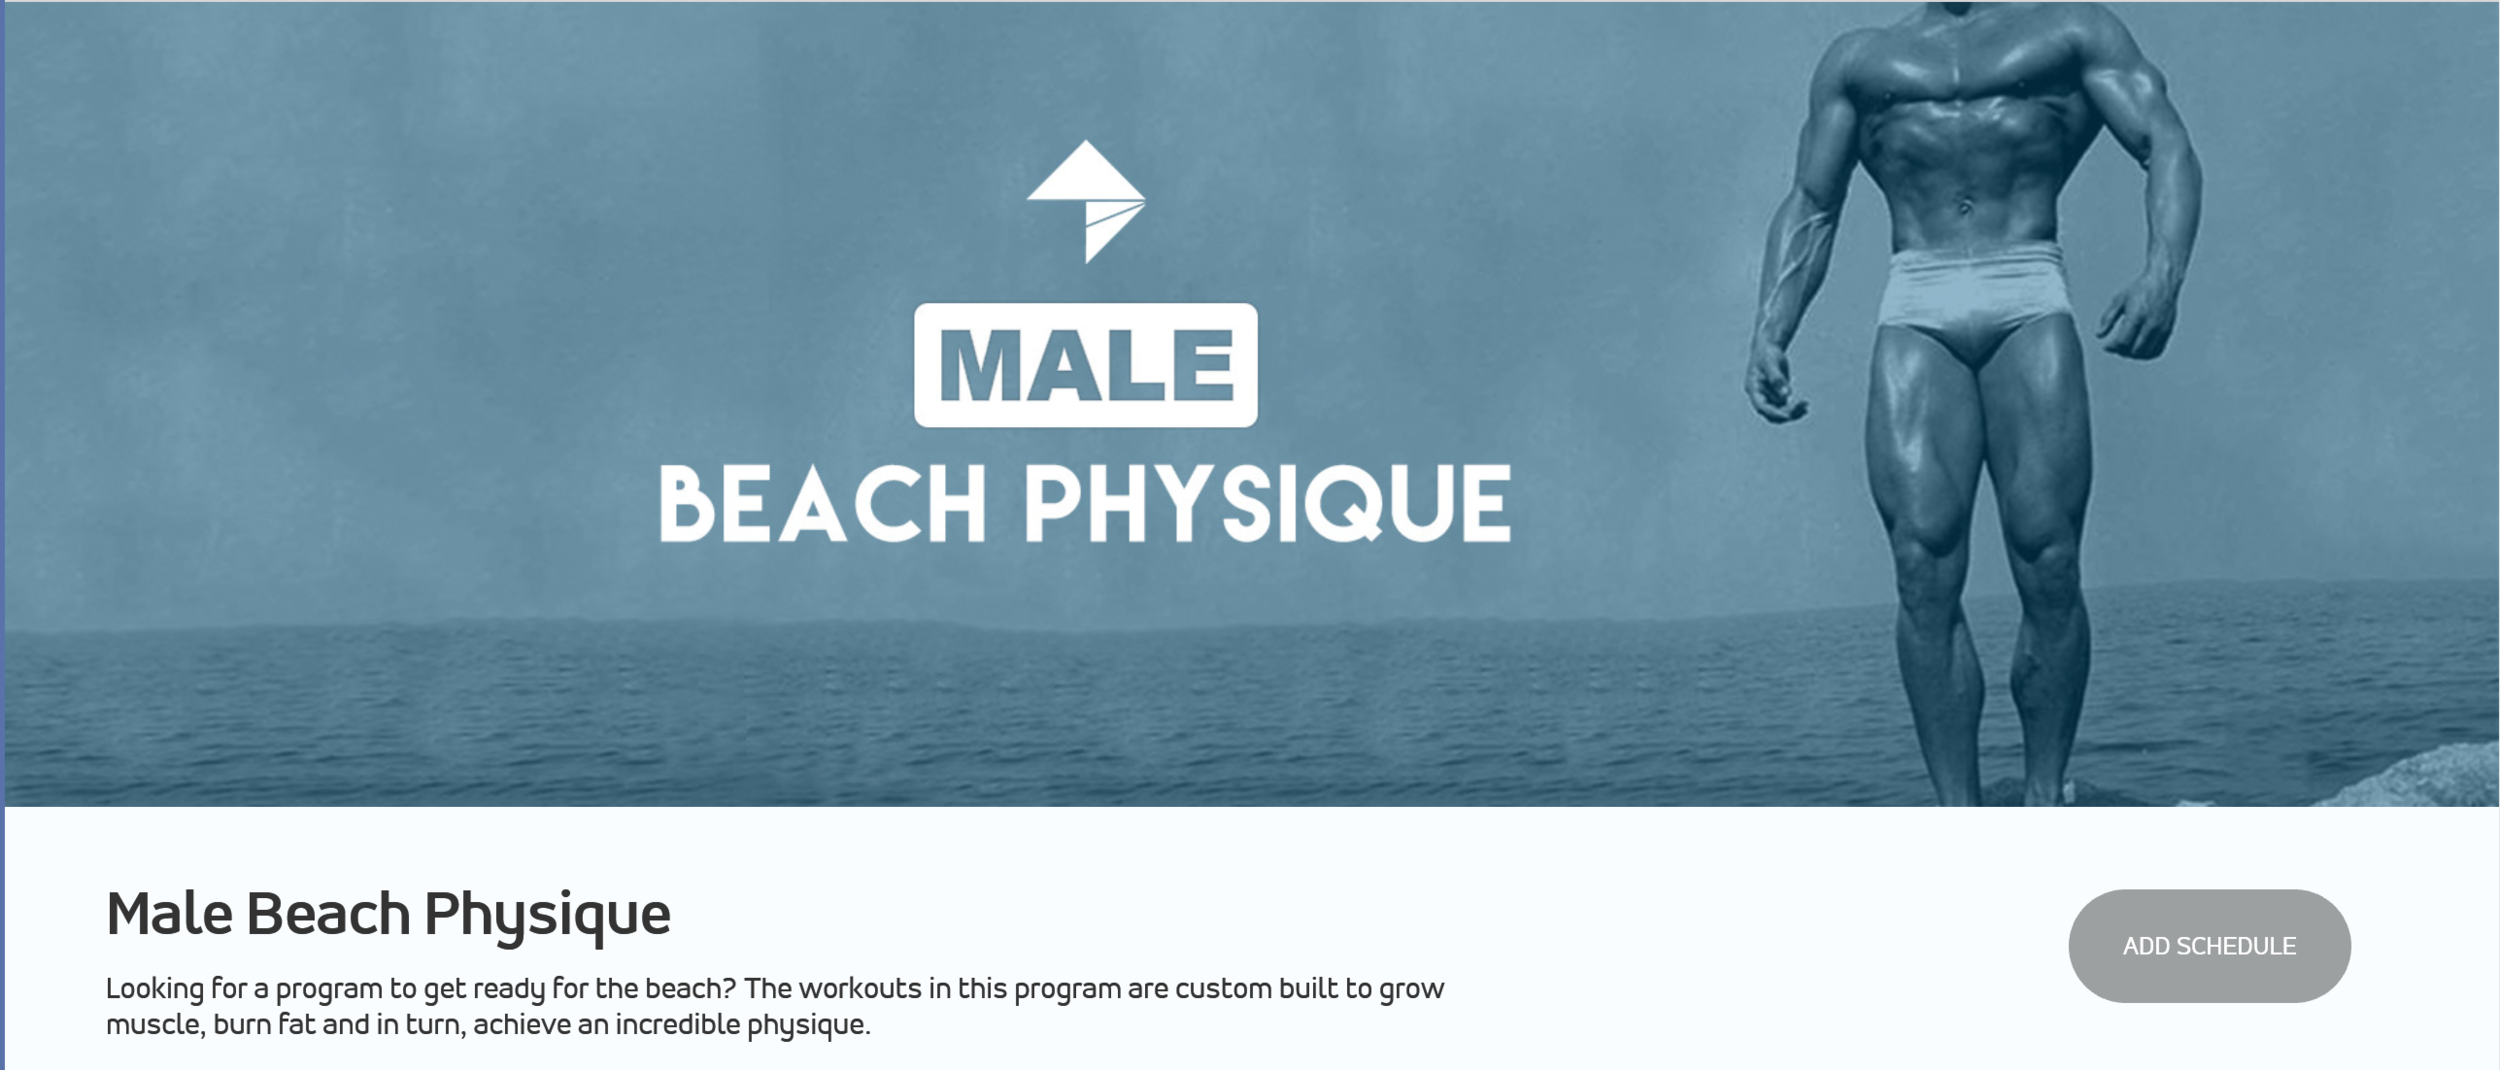 Male Beach Physique.png